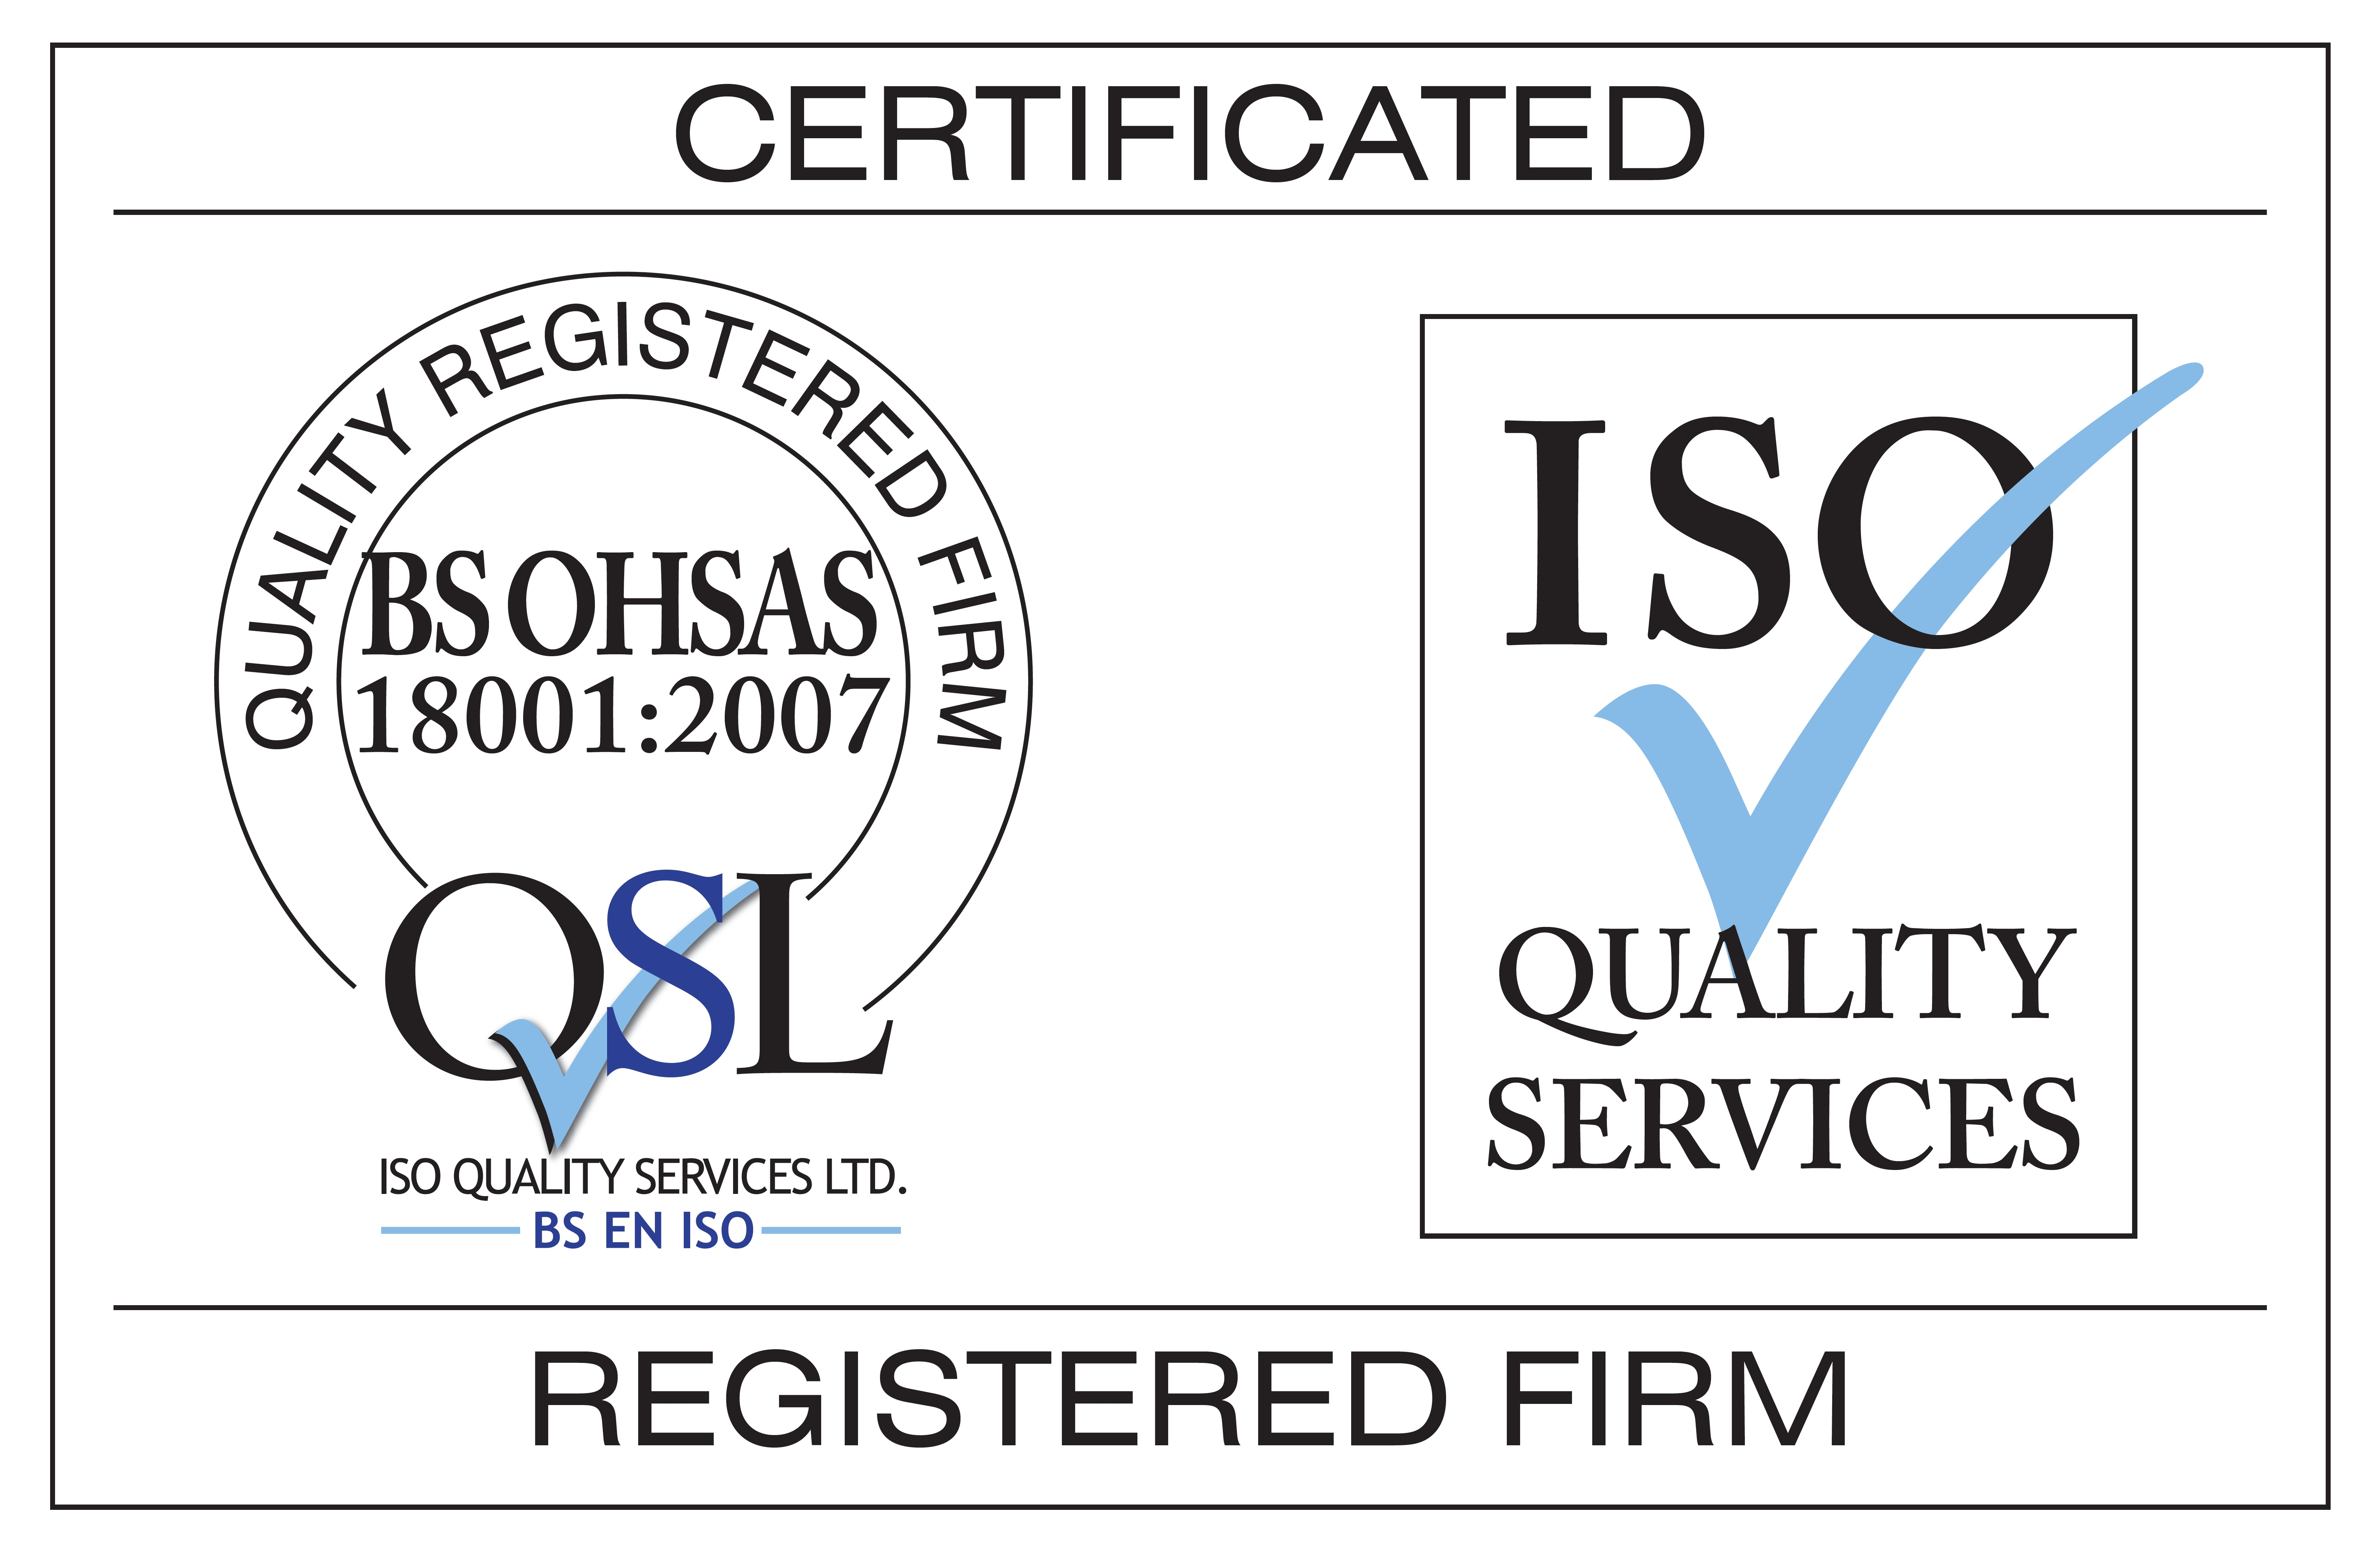 BS OHSAS 18001:2007 certified